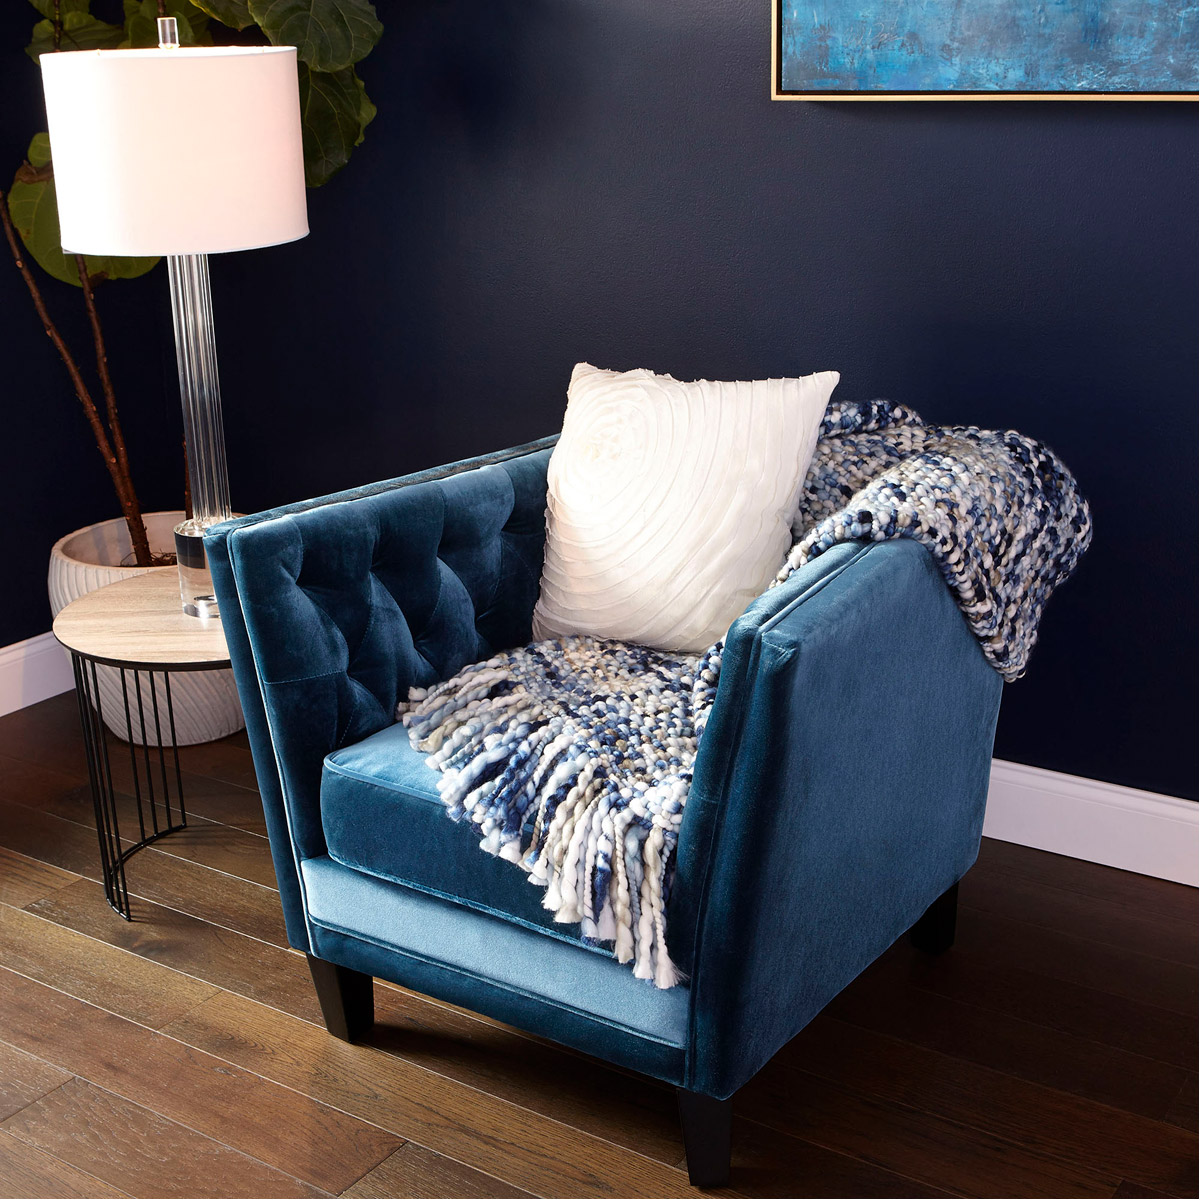 Details About Tufted Blue Velvet Comfy Chair Mid Century Modern